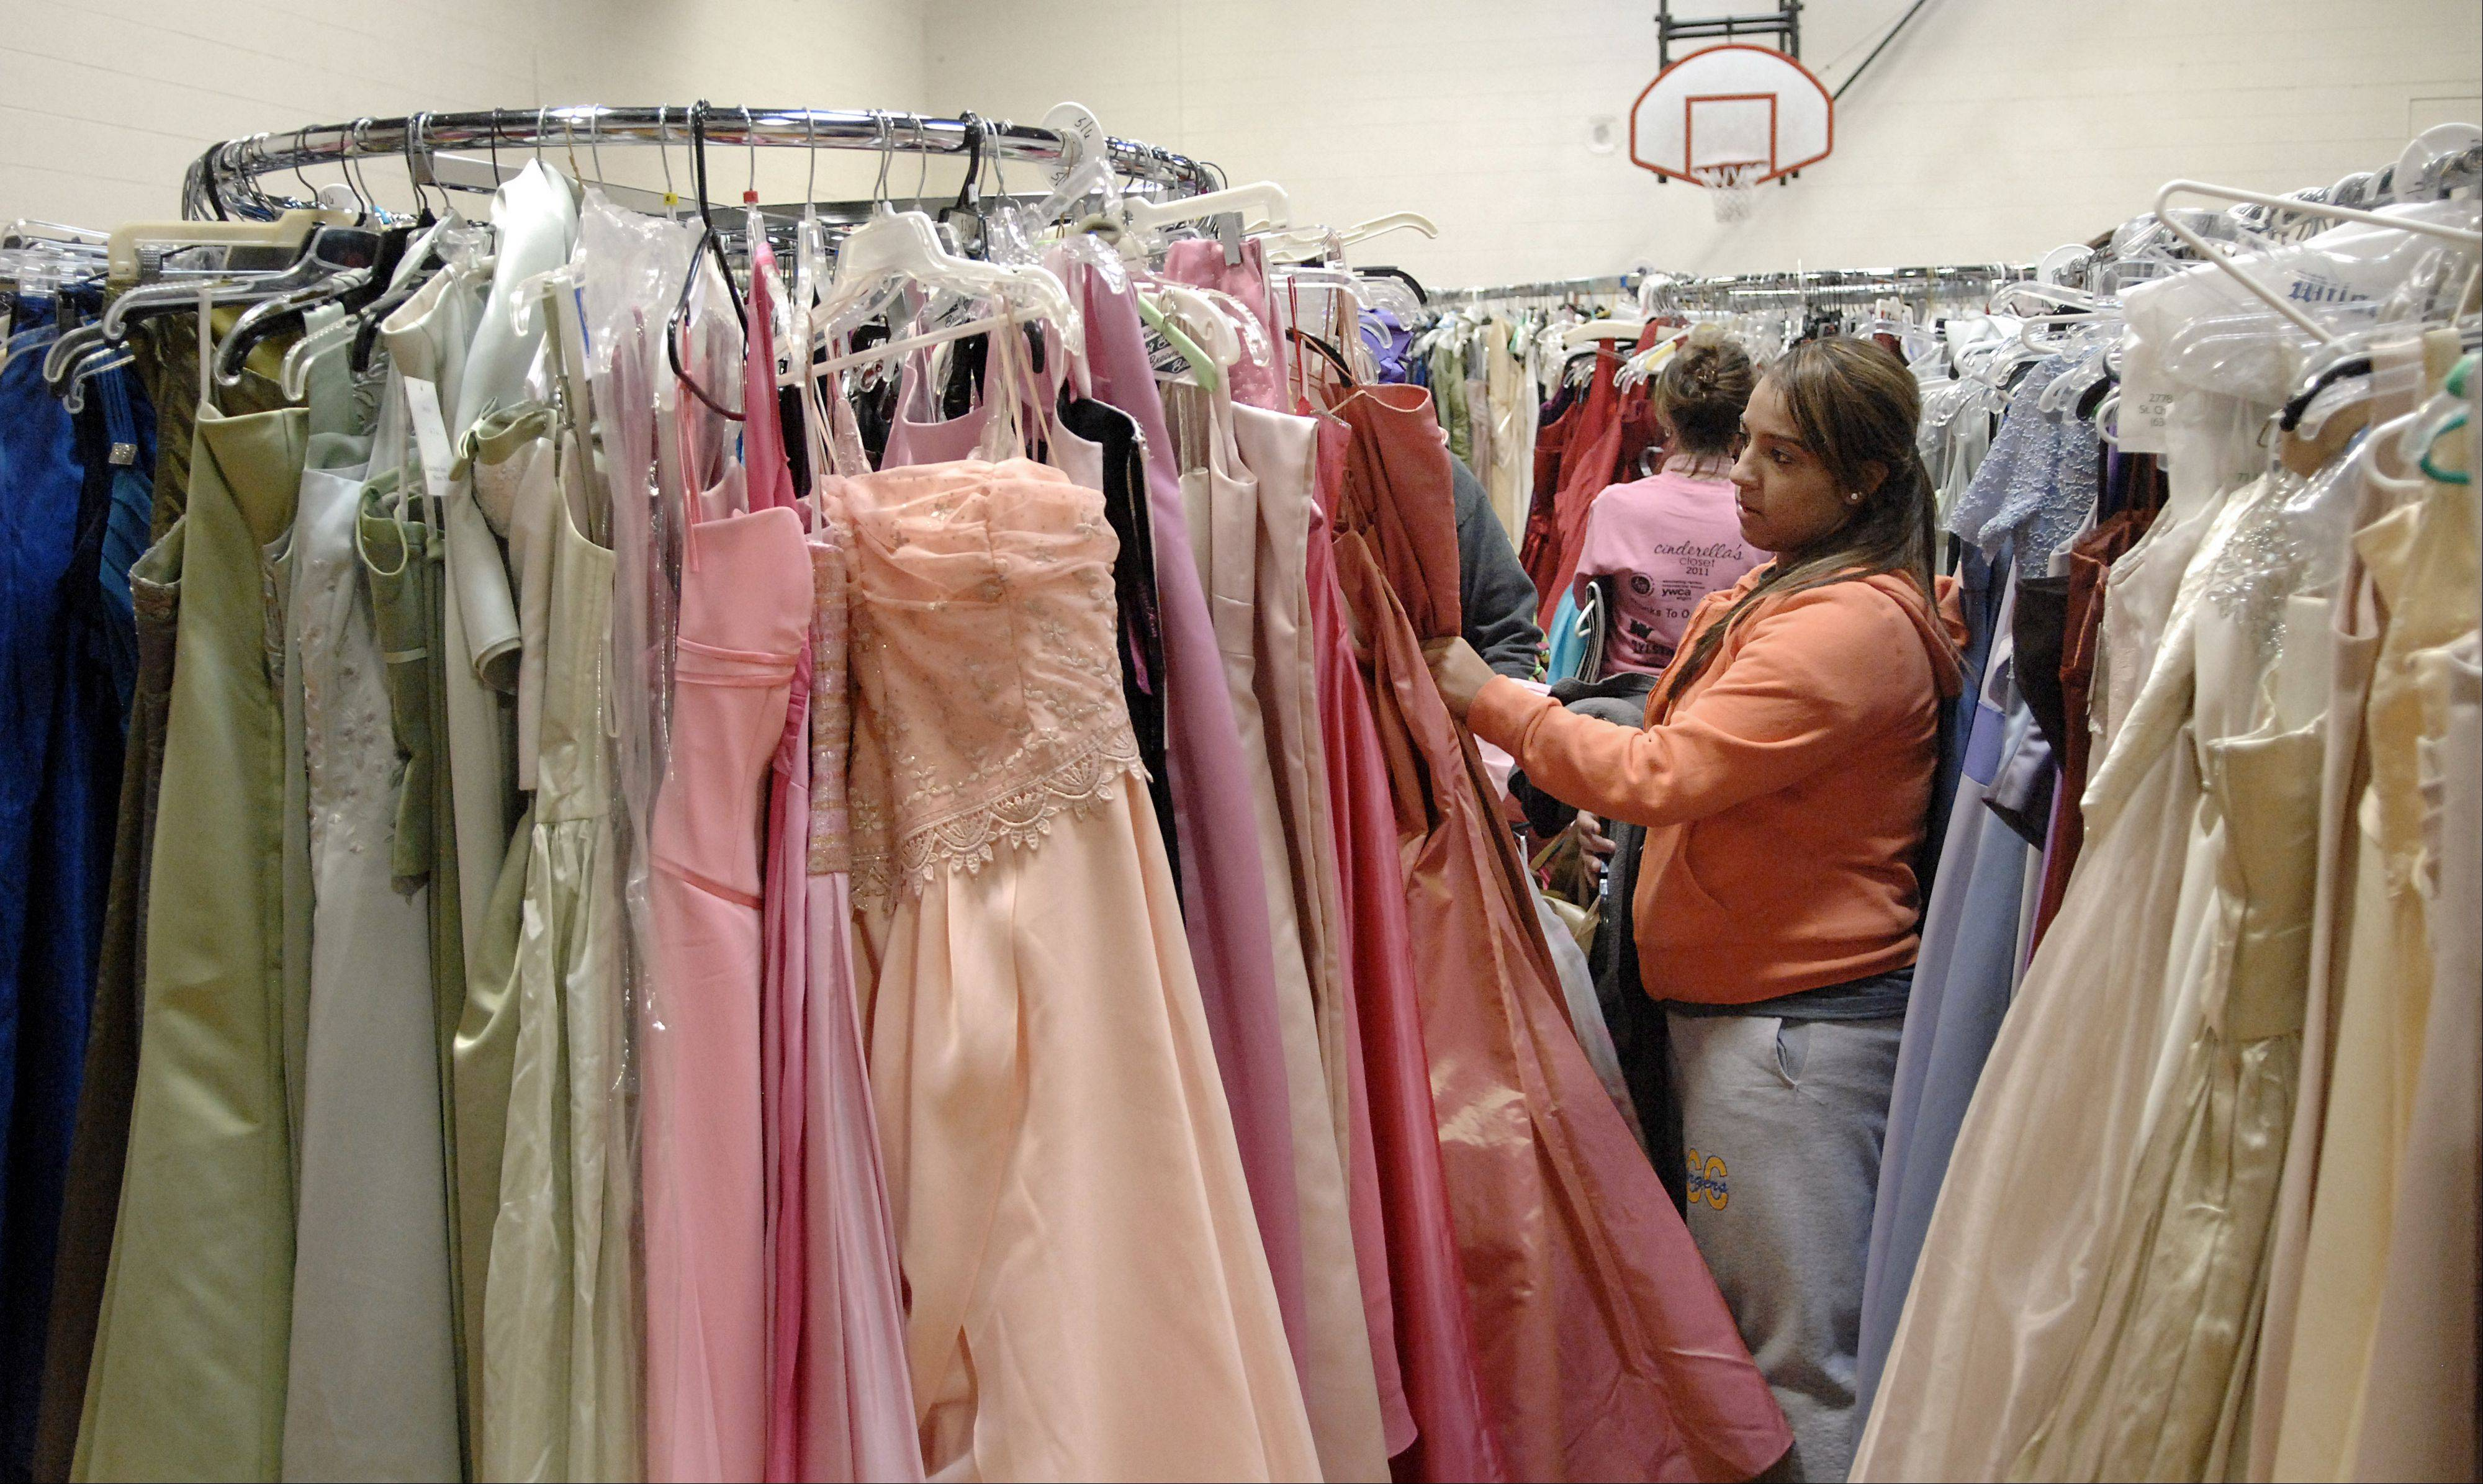 The Junior League of Kane and DuPage Counties sponsors or works with other groups on a variety of projects to meet needs in area communities, including creating the Cinderella�s Closet program that helps girls who otherwise couldn�t afford to attend prom.